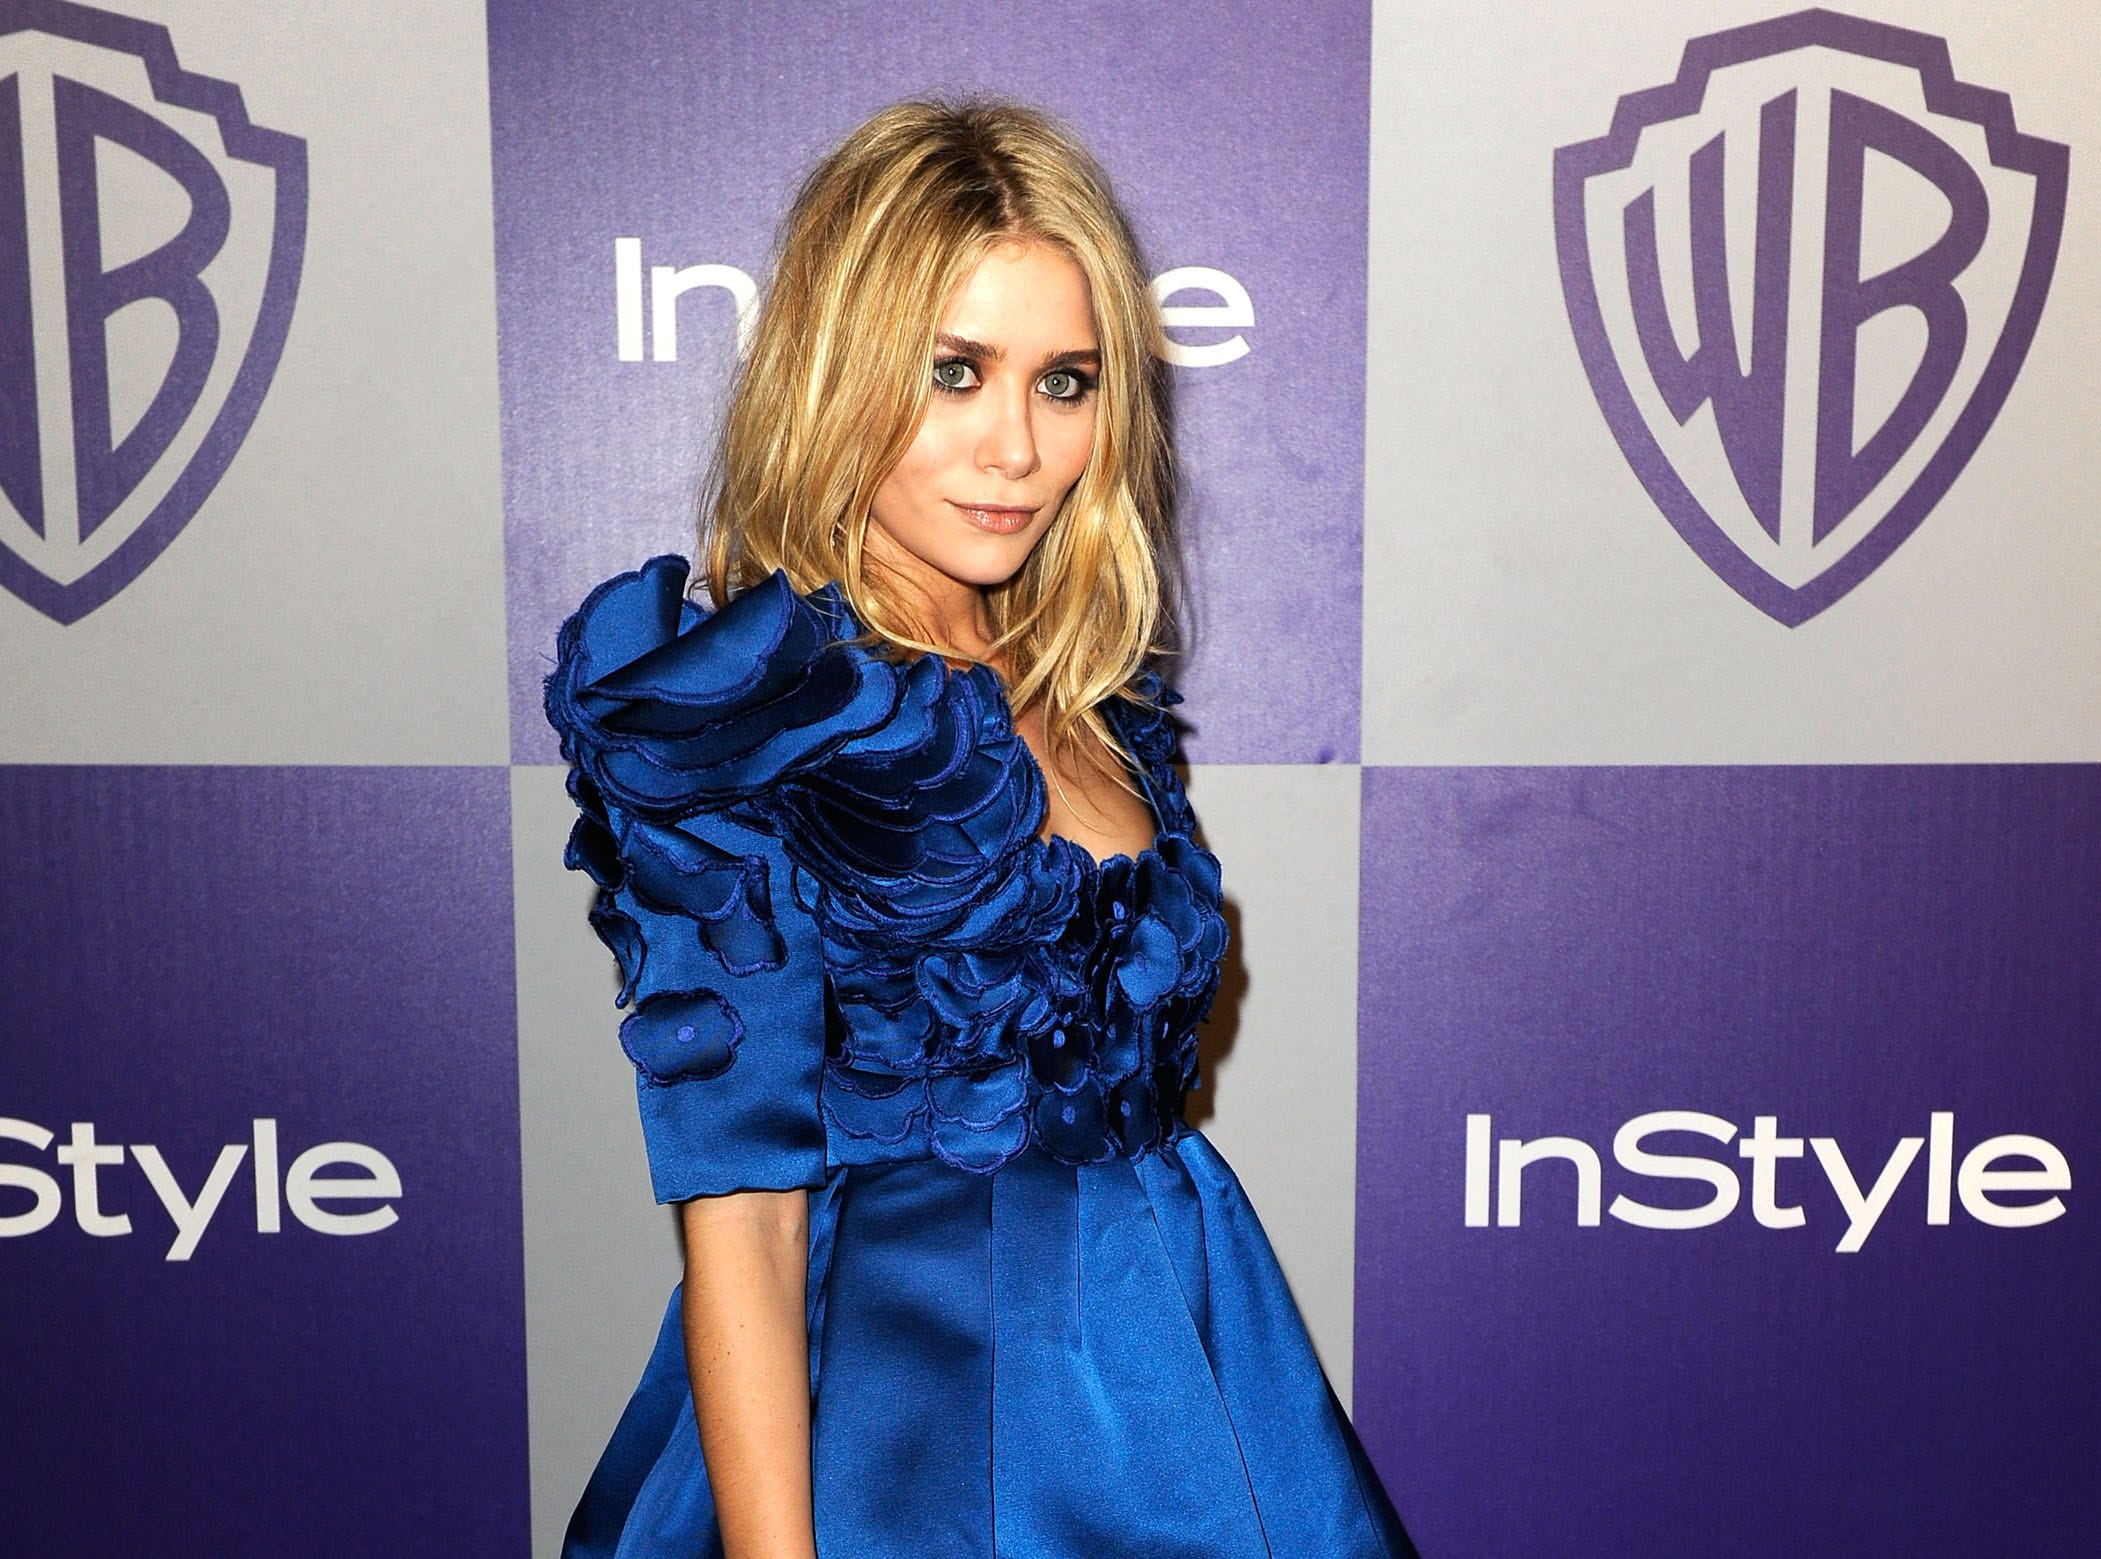 BEVERLY HILLS, CA - JANUARY 17: Actress Ashley Olsen arrives at the InStyle and Warner Bros. 67th Annual Golden Globes after party held at the Oasis Courtyard at The Beverly Hilton Hotel on January 17, 2010 in Beverly Hills, California.  (Photo by Kevork Djansezian/Getty Images) ORG XMIT: 95654913 GTY ID: 0059316598.jpg